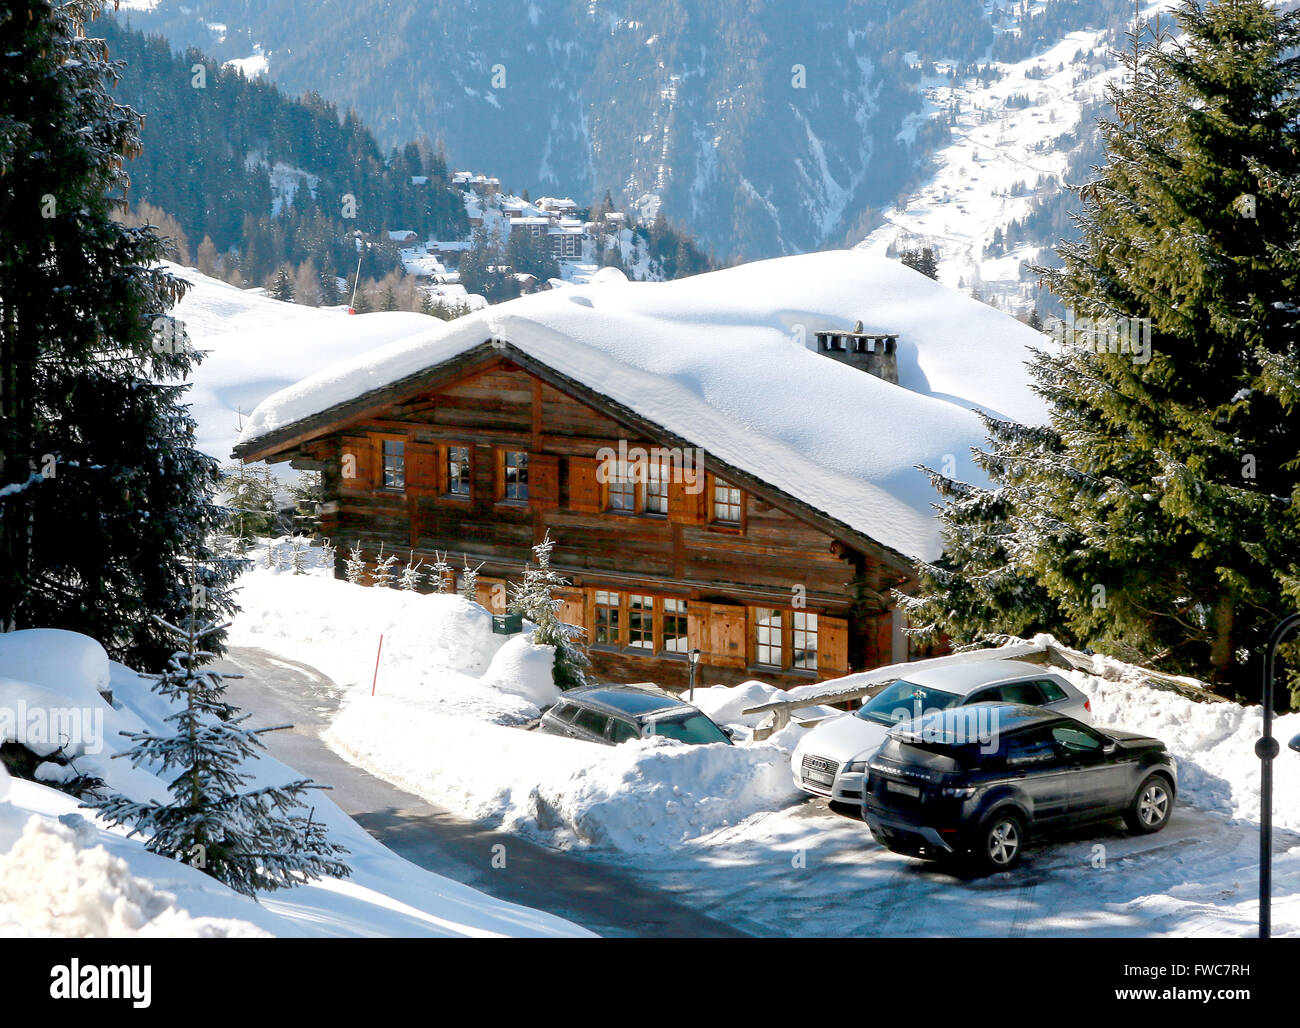 Ski chalet owned by TRH Duke and Duchess of York - Chalet Helora in Verbier, Switzerland. - Stock Image